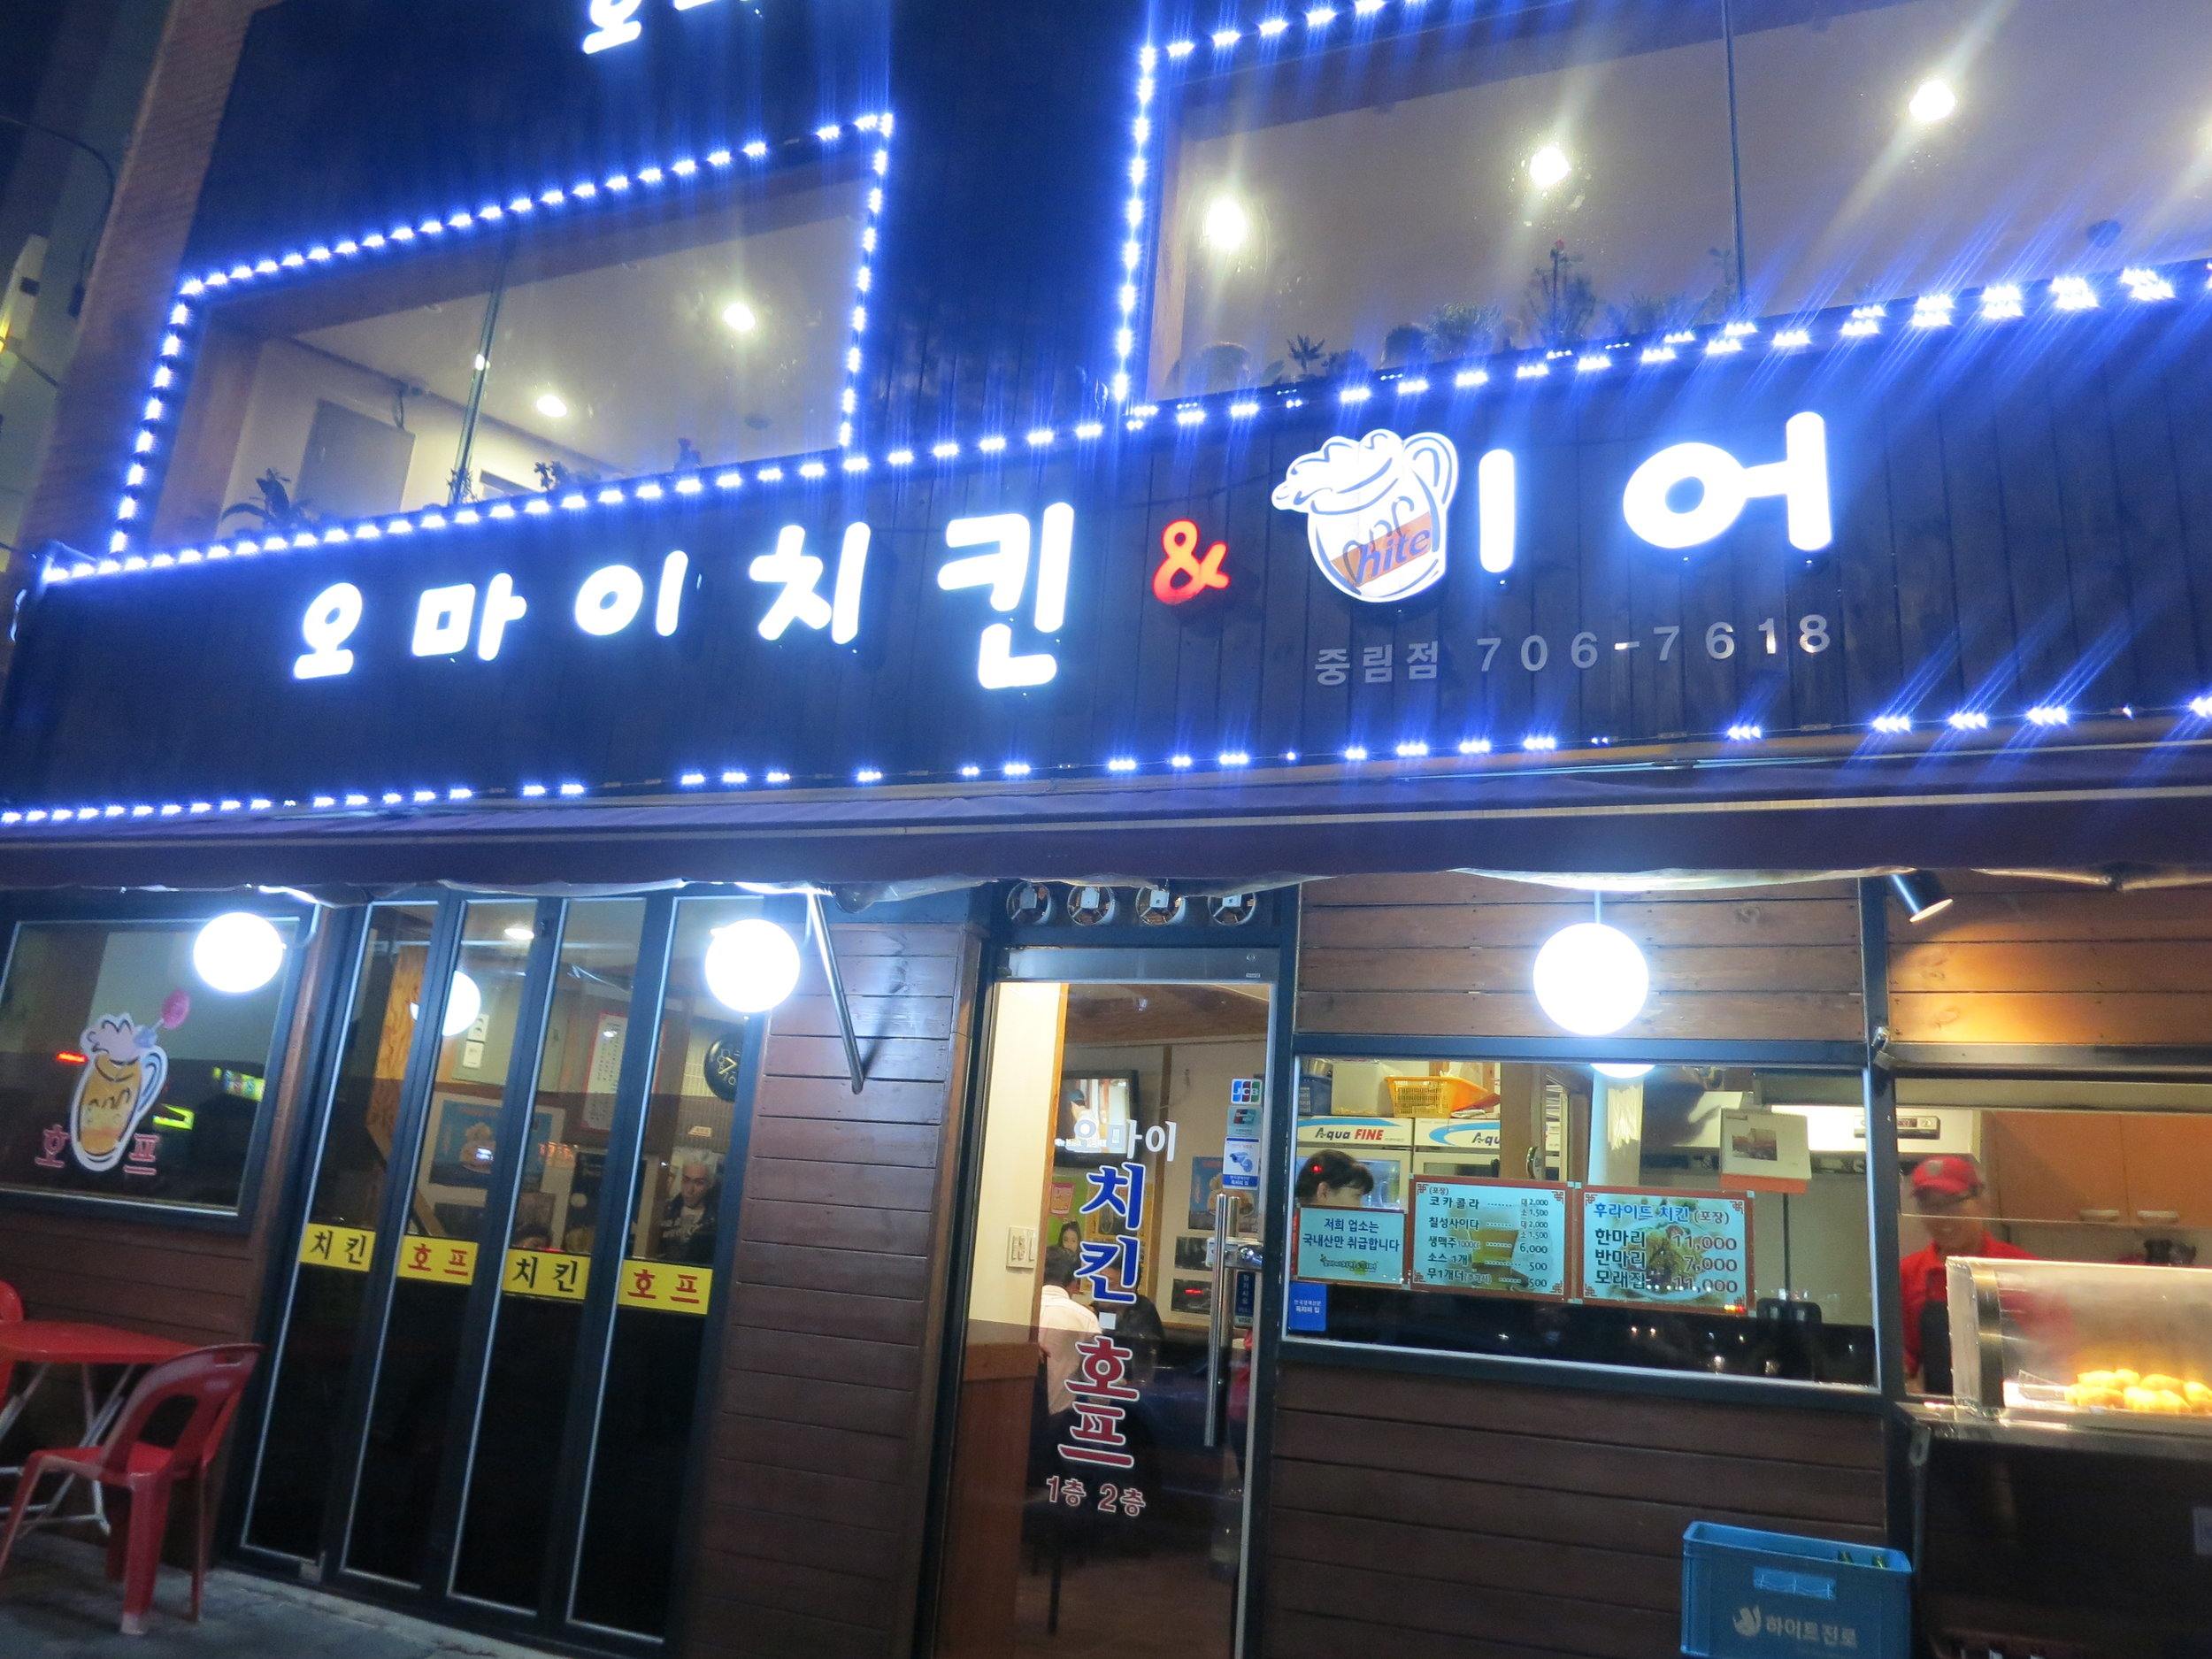 seoul - 24 hours of fun and food!